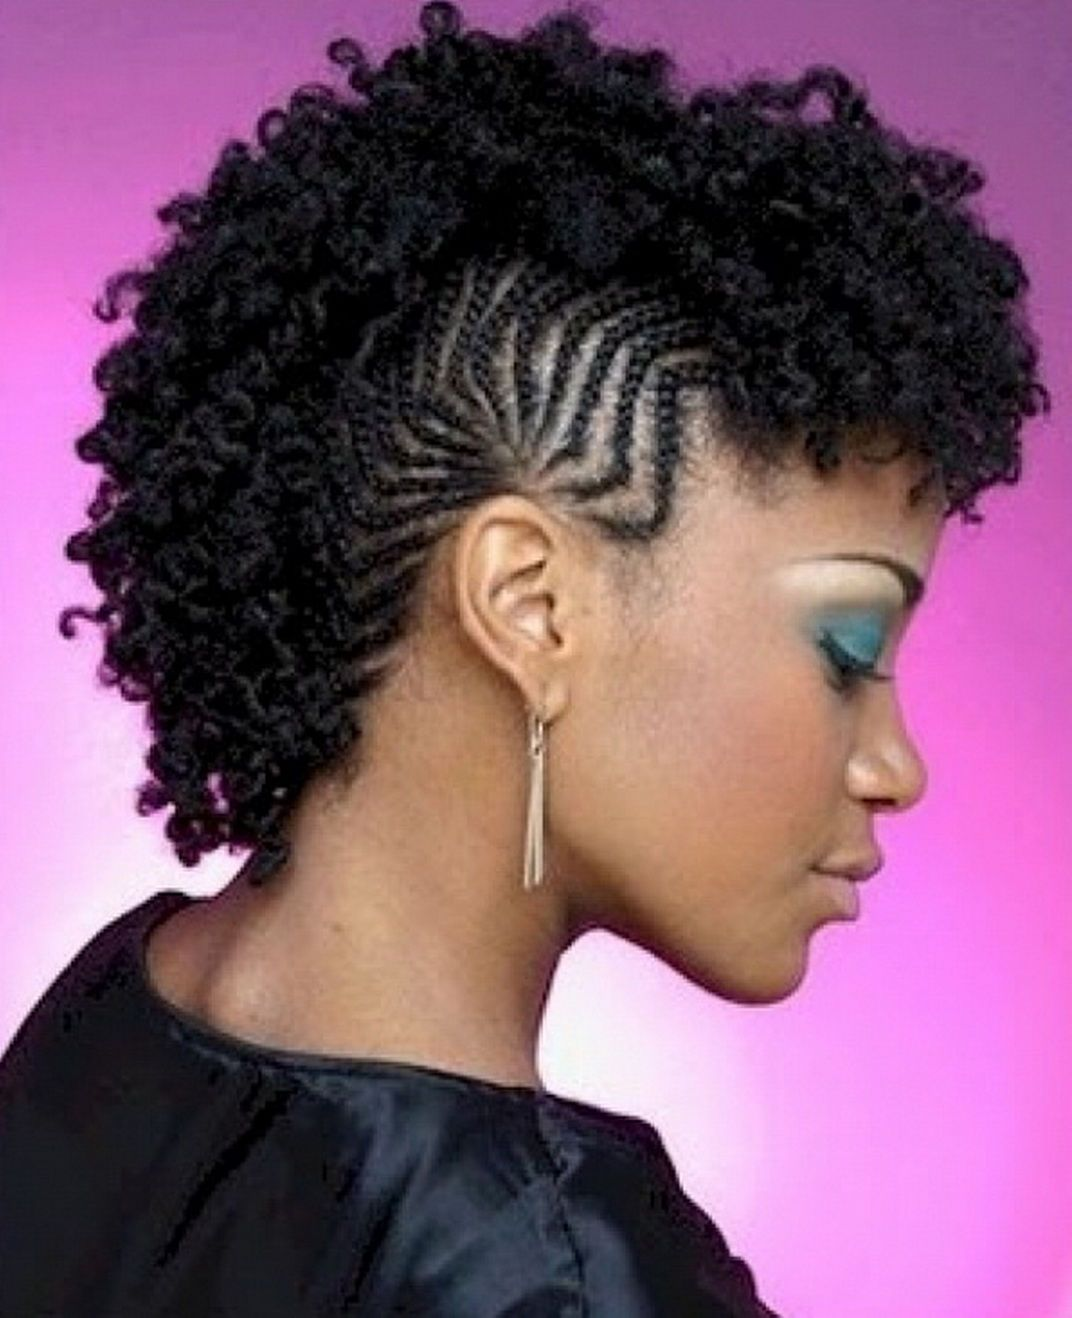 40 Cute Hairstyles Black Hair 2015 Pictures In 2020 Mohawk Hairstyles Natural Hair Styles Cool Braid Hairstyles